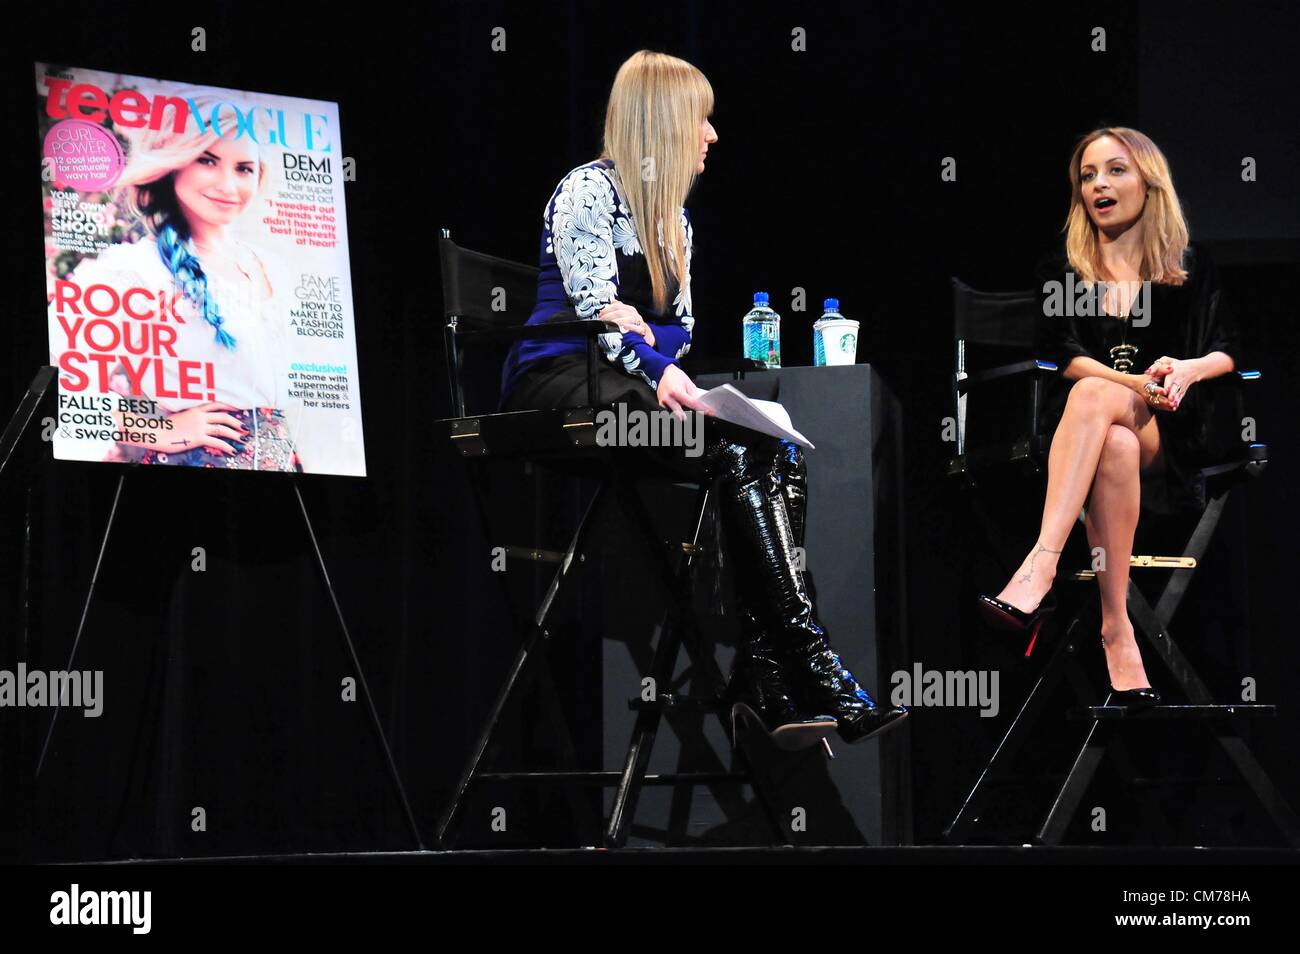 Amy Astley, Nicole Richie at a public appearance for TEEN VOGUE Fashion  University, The Hudson Theatre, New York, NY October 20, 2012.